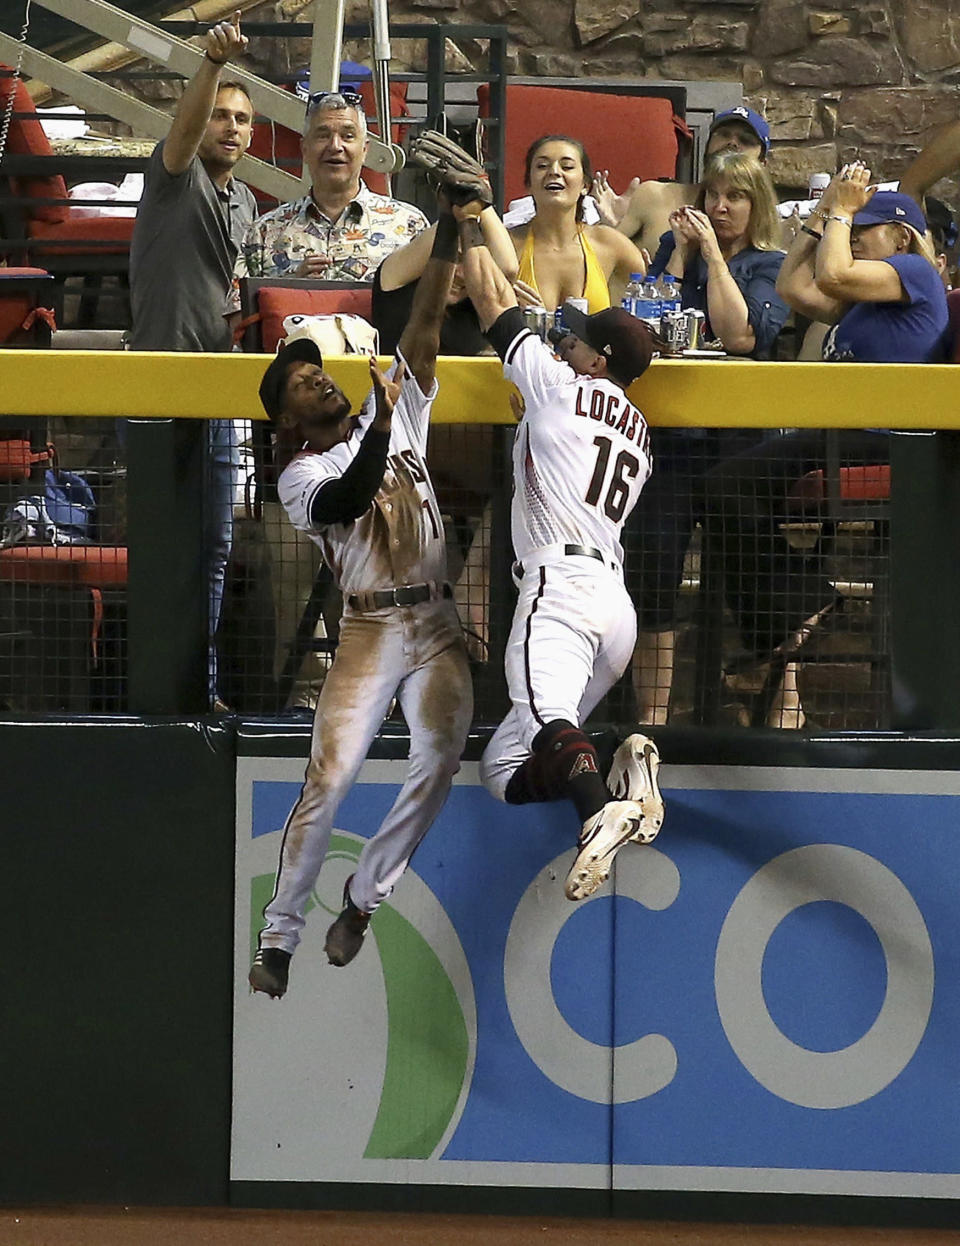 Arizona Diamondbacks center fielder Jarrod Dyson, left, makes a catch taking a home run away from Los Angeles Dodgers' Joc Pederson as Dyson collides with Diamondbacks right fielder Tim Locastro (16) during the seventh inning of a baseball game Wednesday, June 26, 2019, in Phoenix. (AP Photo/Ross D. Franklin)